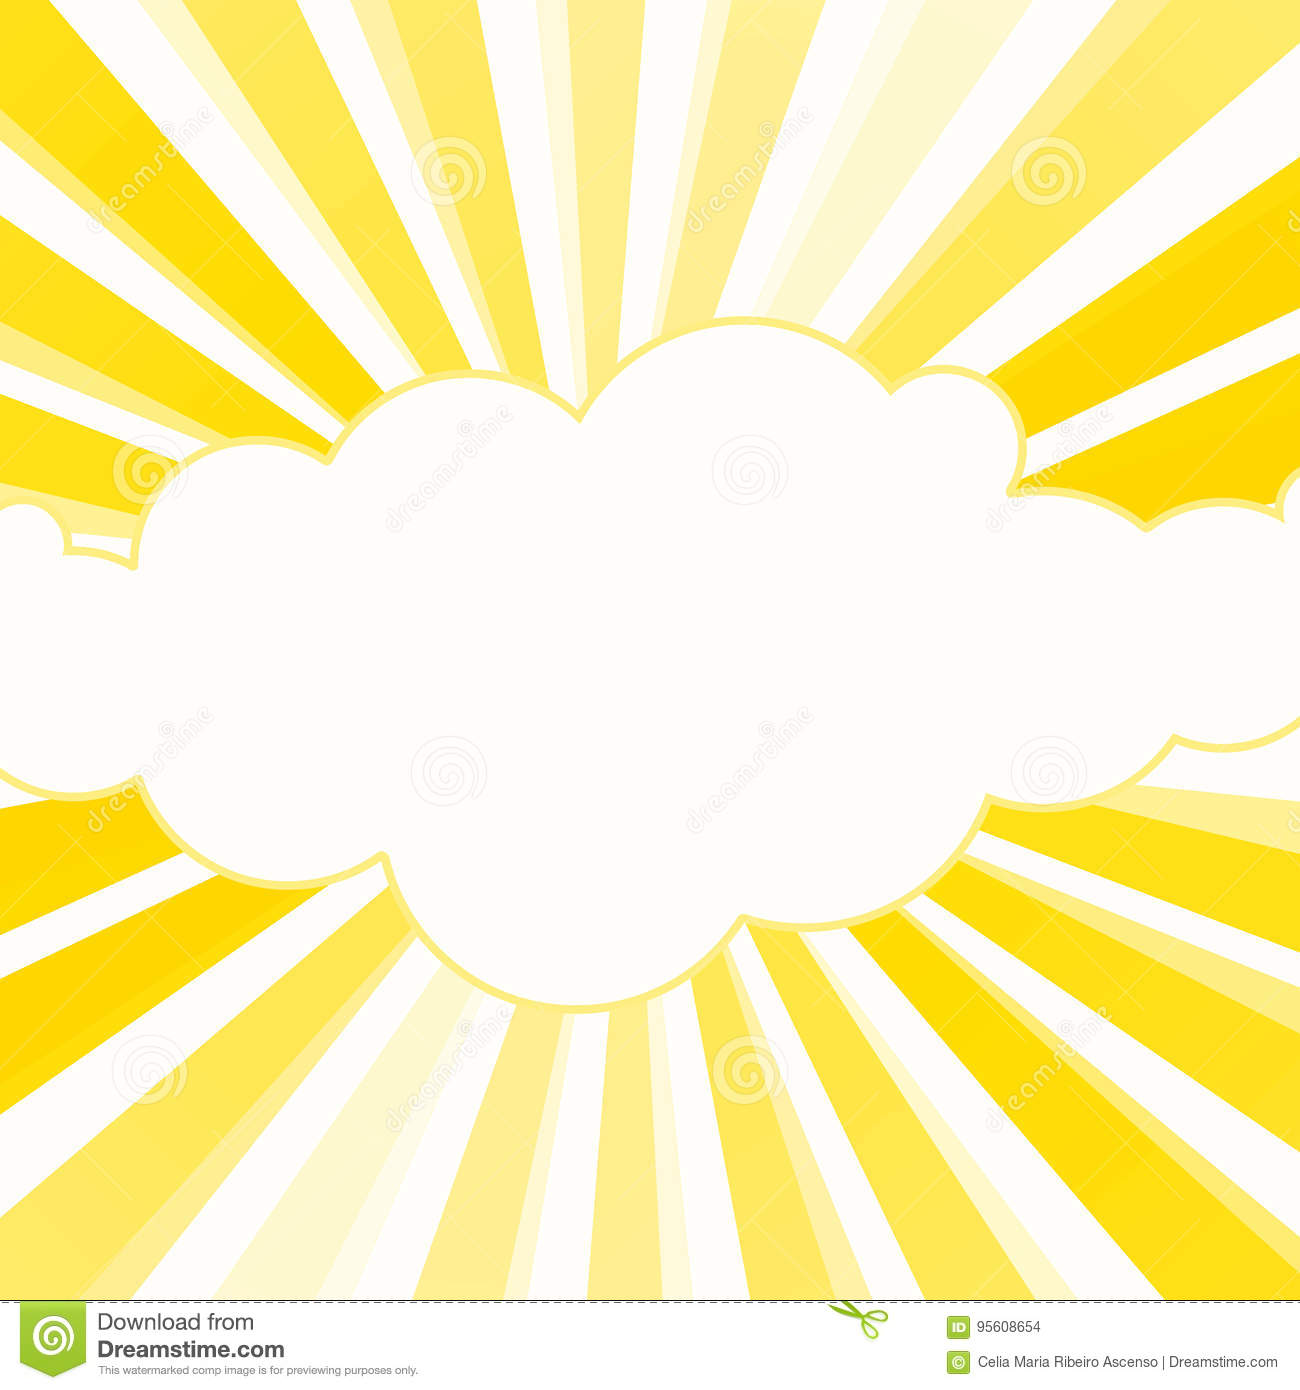 hight resolution of sunshine rays stock illustrations 12 085 sunshine rays stock illustrations vectors clipart dreamstime